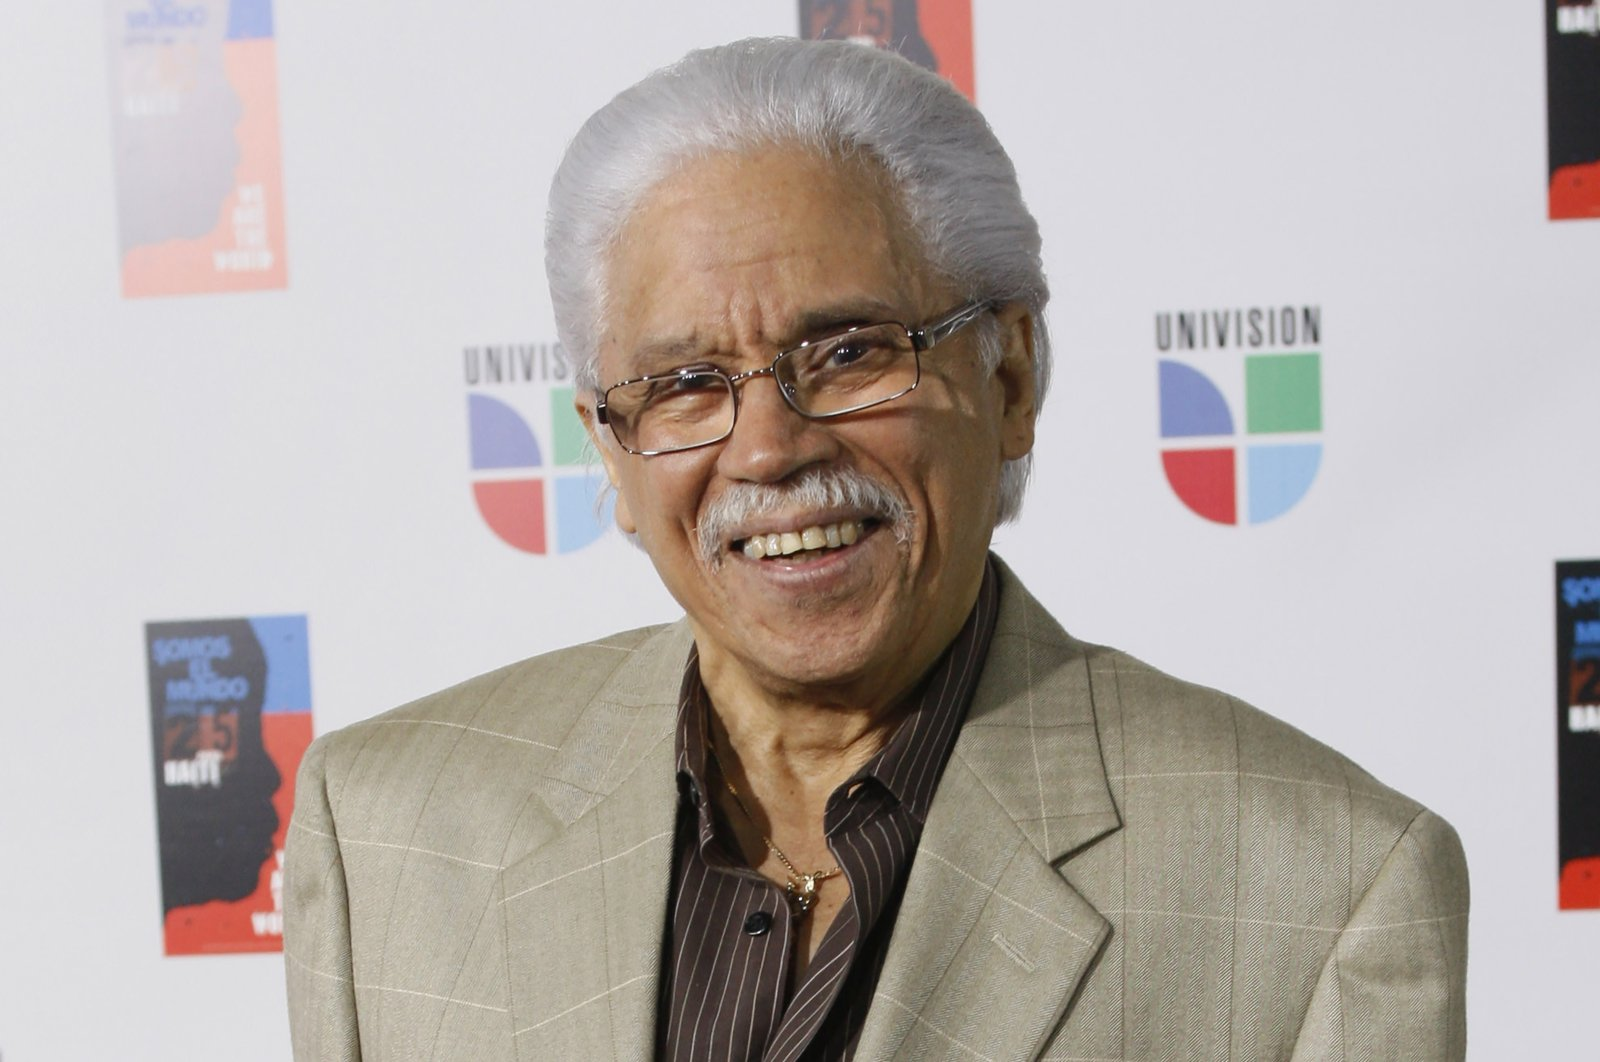 In this file photo, Dominican artist Johnny Pacheco poses for photographers in Miami, Florida, U.S., Feb. 19, 2019 (AP PHOTO)